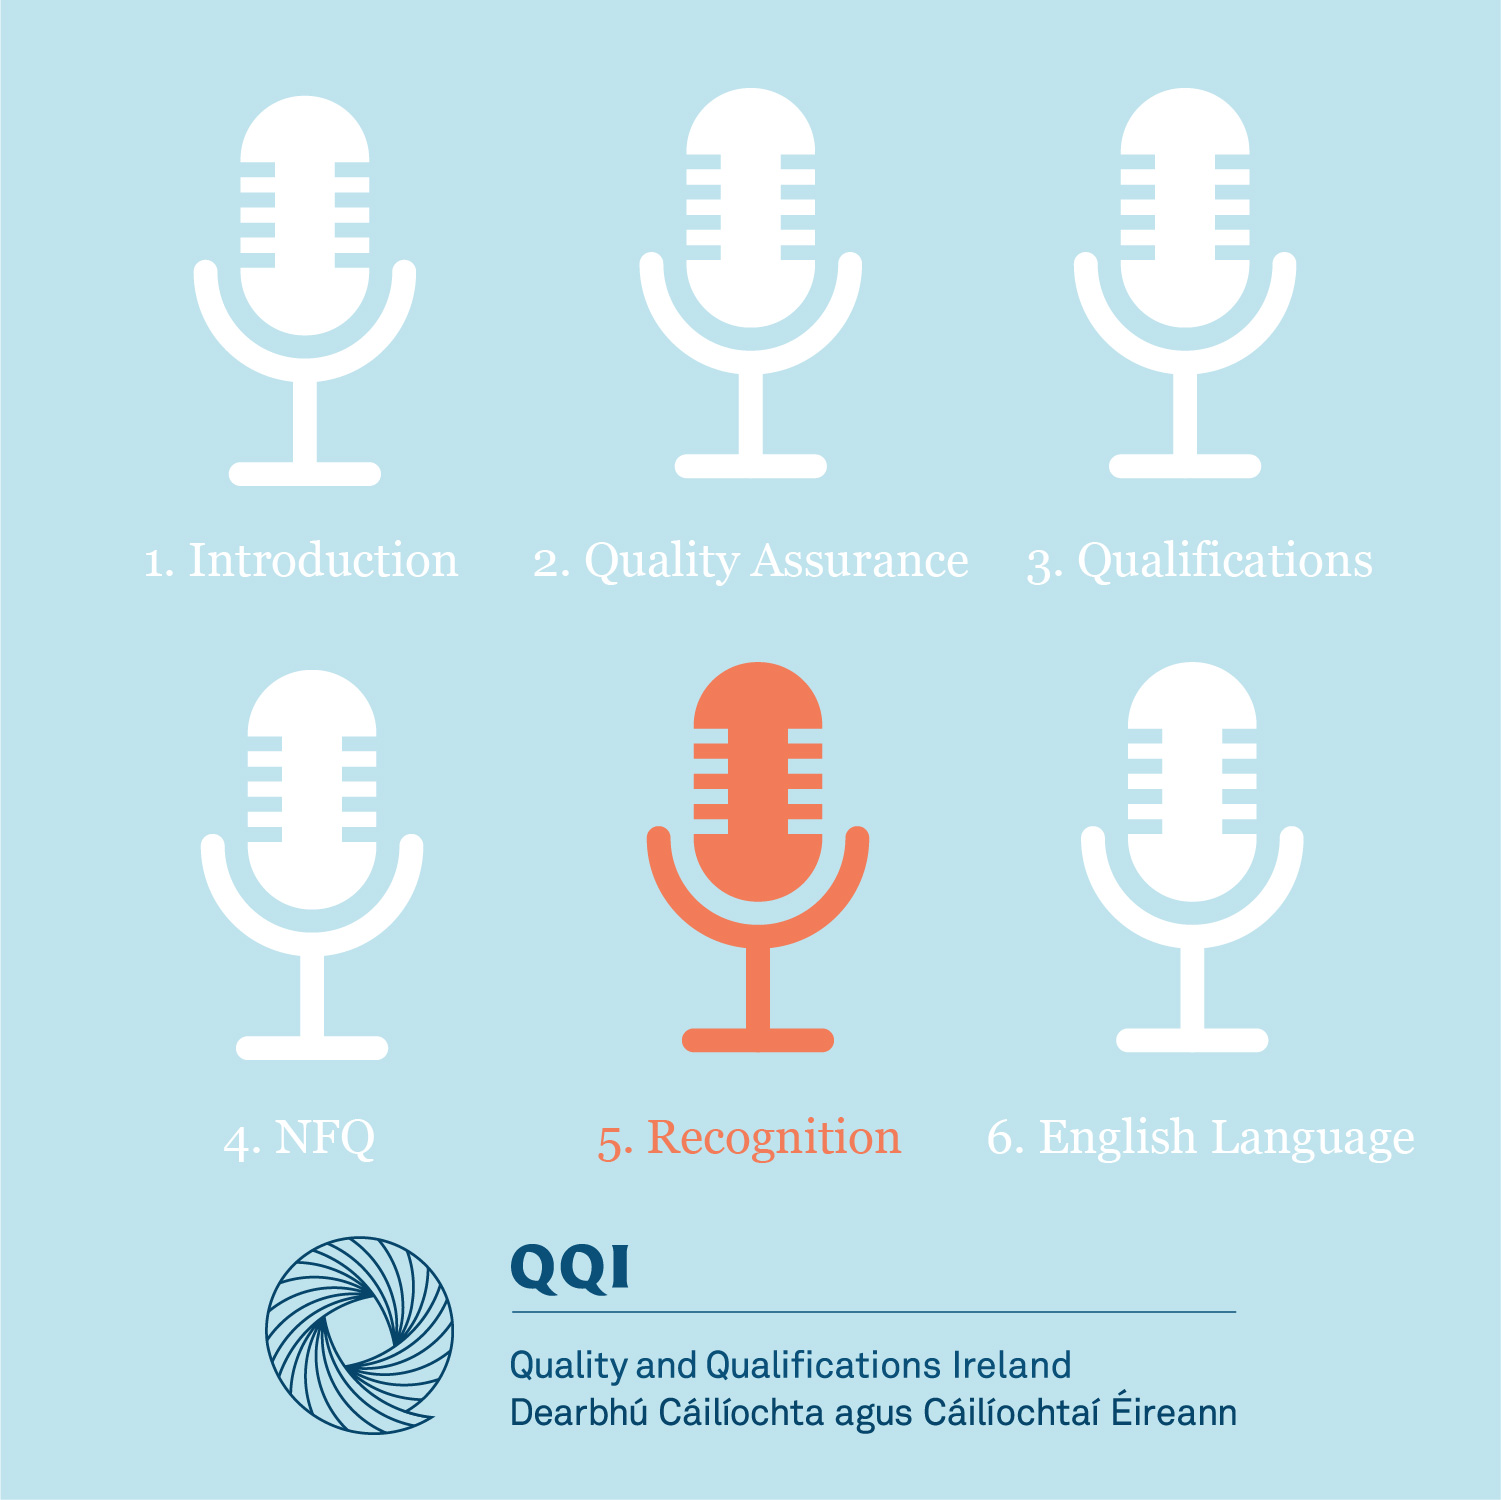 5. Recognition of Qualifications Home and Abroad